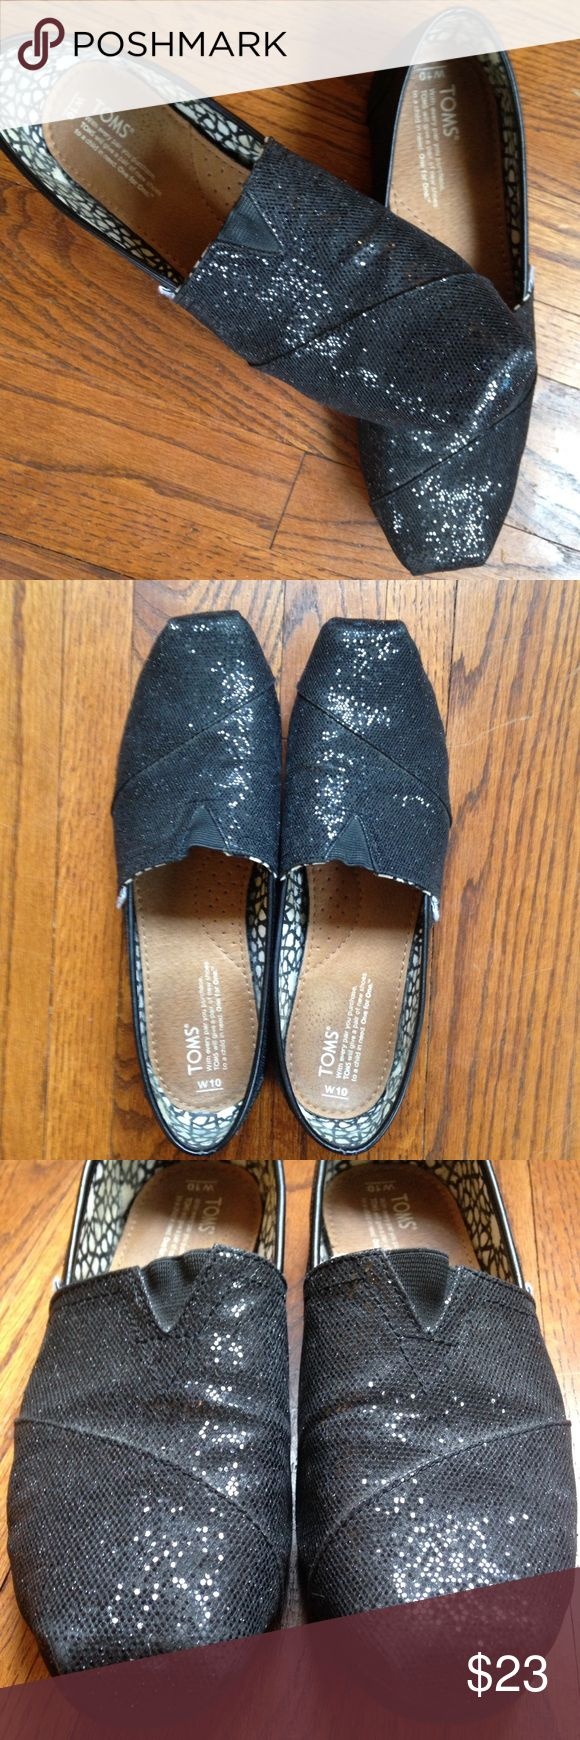 Black Glitter TOMS Classic Slip-On Size 10 TOMS classic slip-on in fun black glitter! In overall great condition with few signs of wear - tiny blue scuff on toe of right foot, some wear back of right heel, and dirt marks inside heel areas of both. Lots of life left in these shoes! TOMS Shoes Flats & Loafers